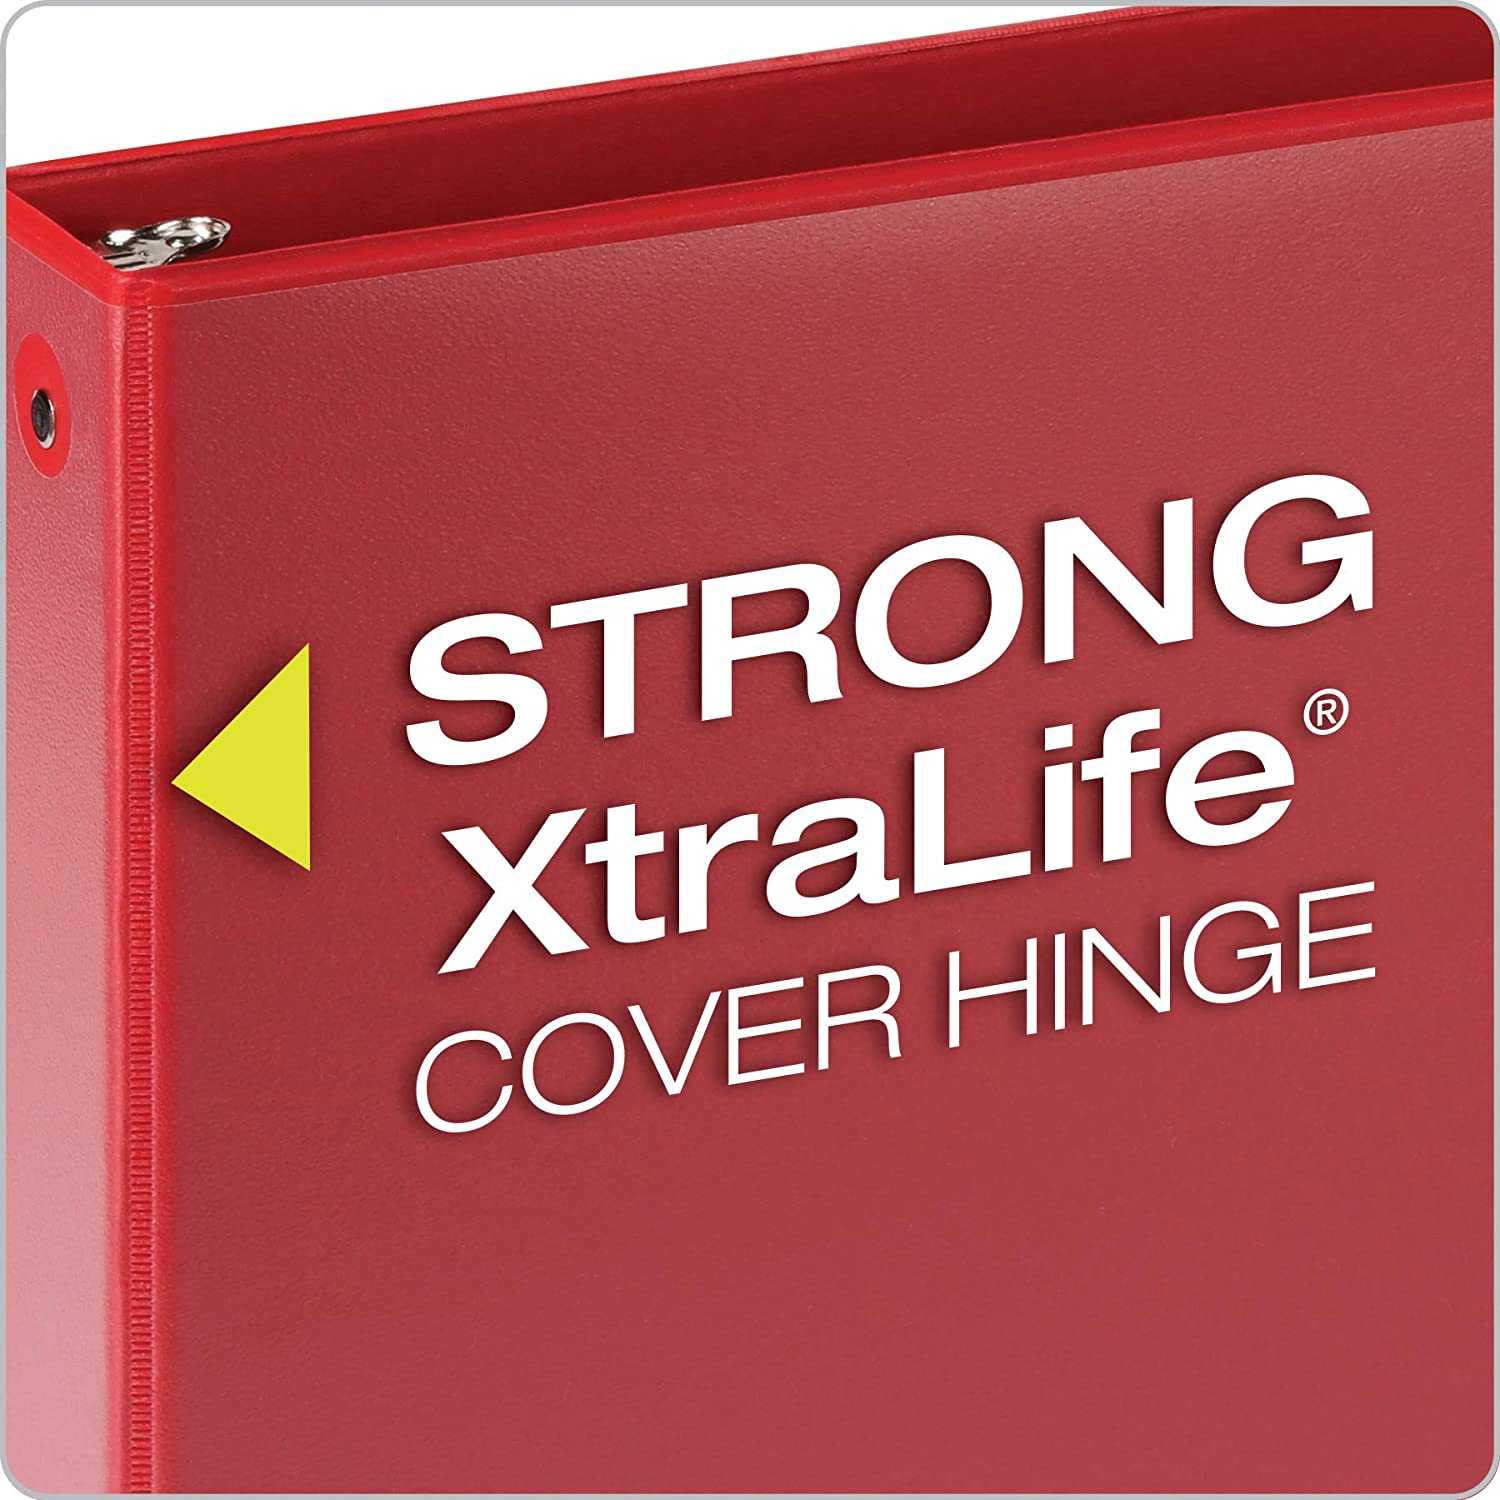 Cardinal 3 Ring Binders, 1.5 Inch, Round Rings, Holds 350 Sheets, ClearVue Presentation View, Non-Stick, Assorted Colors, 4 Pack (79550) : Office Products